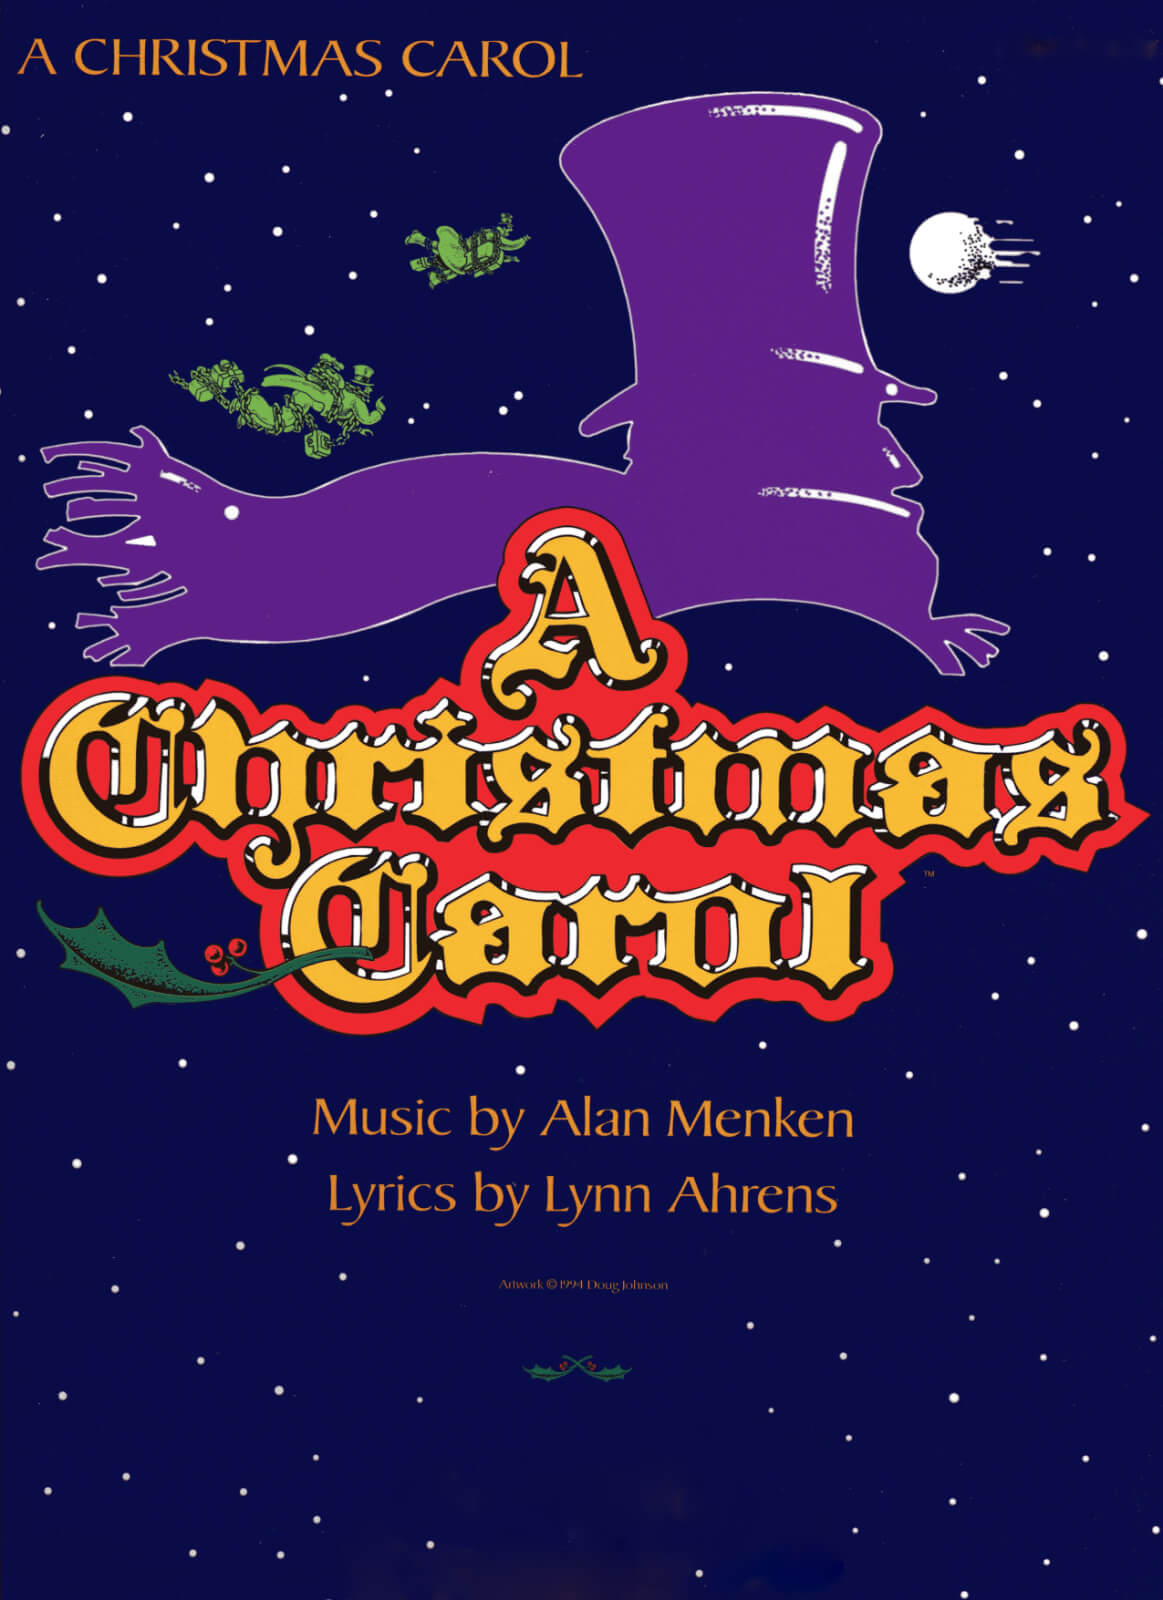 Poster Art for A Christmas Carol shows Scrooge silhouette with top hat and a scarf blowing in the wind.